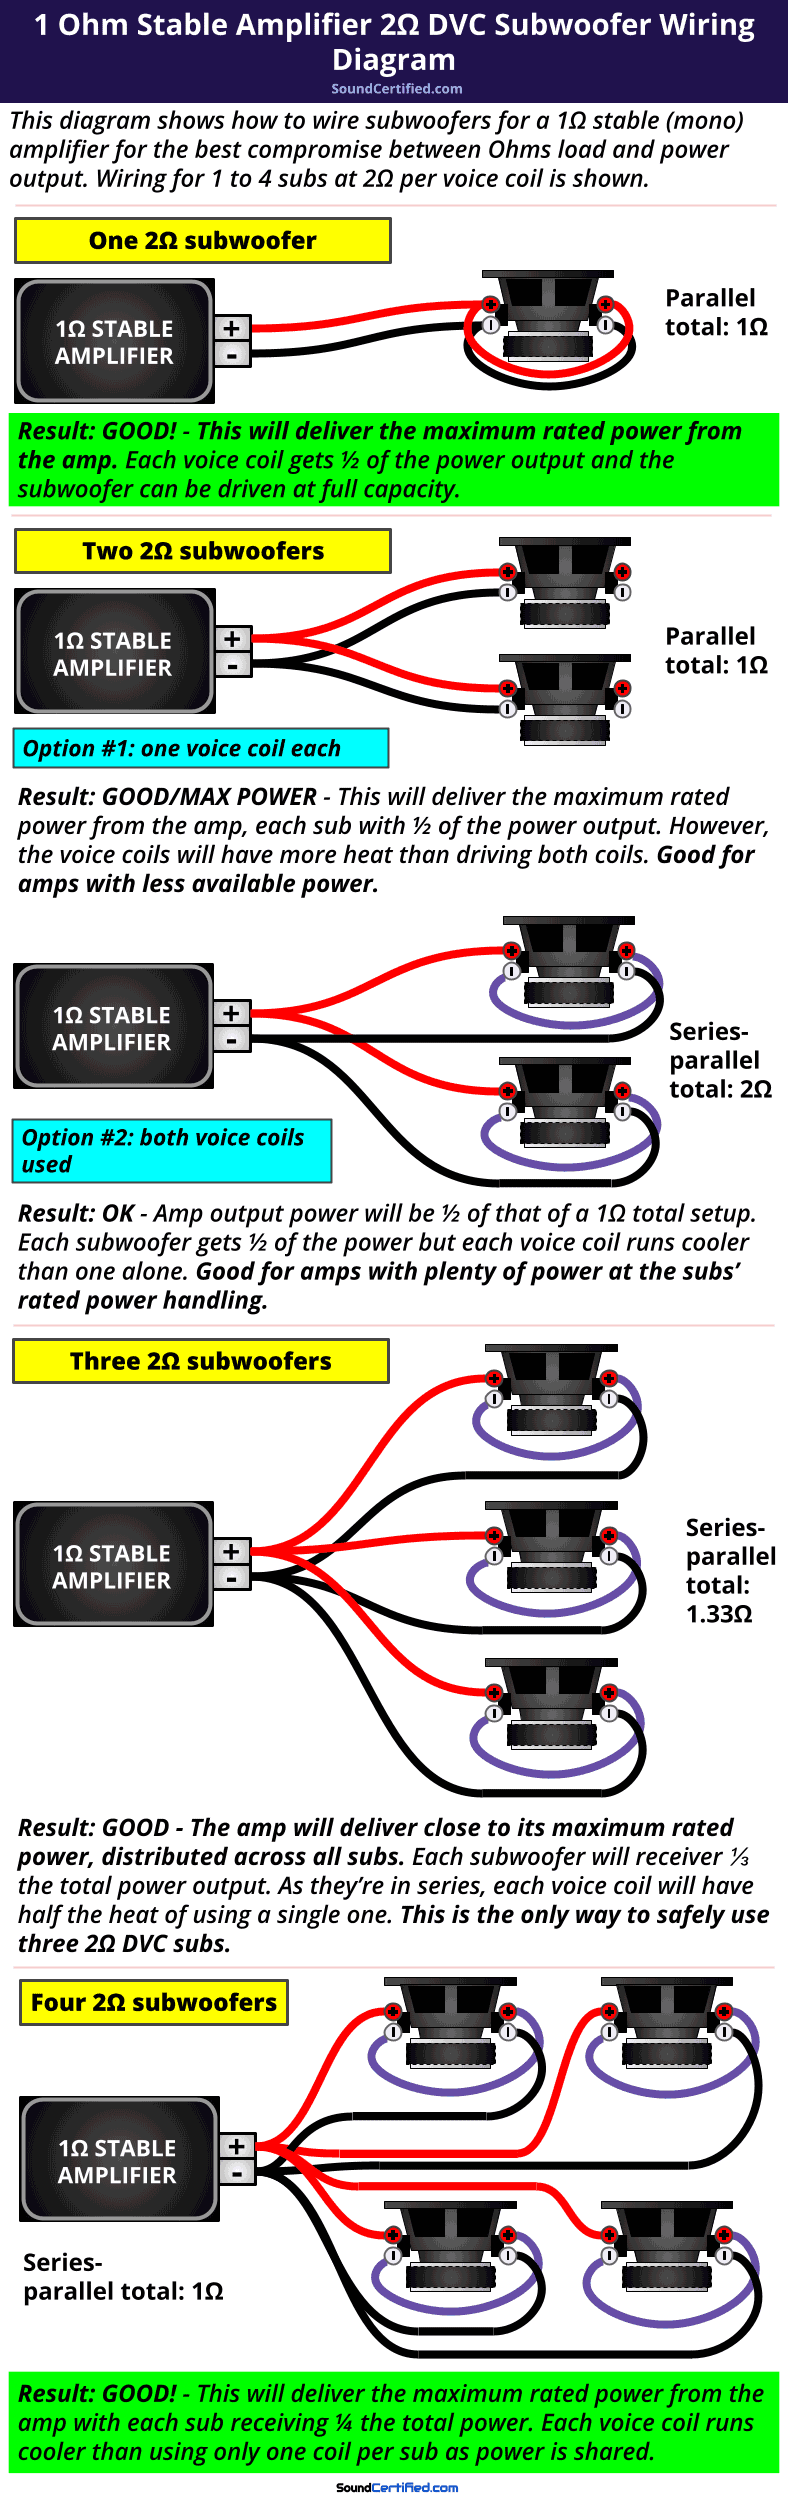 1 ohm stable car amp 2 ohm DVC subwoofer wiring diagram